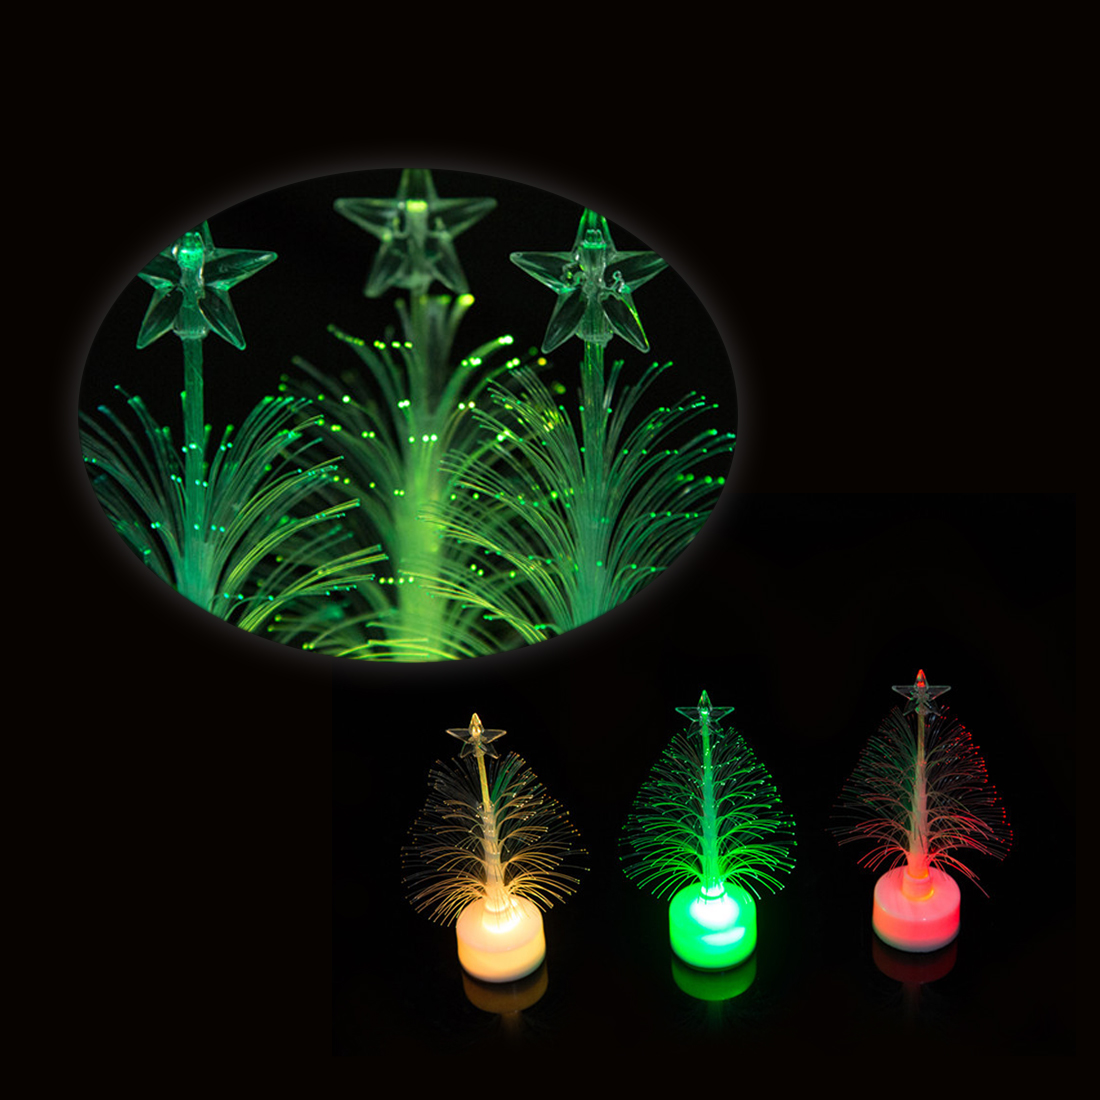 1pcs High Quality Lamp Light Night Home Decorations Led Desk Decor Small Christmas Tree Colorful